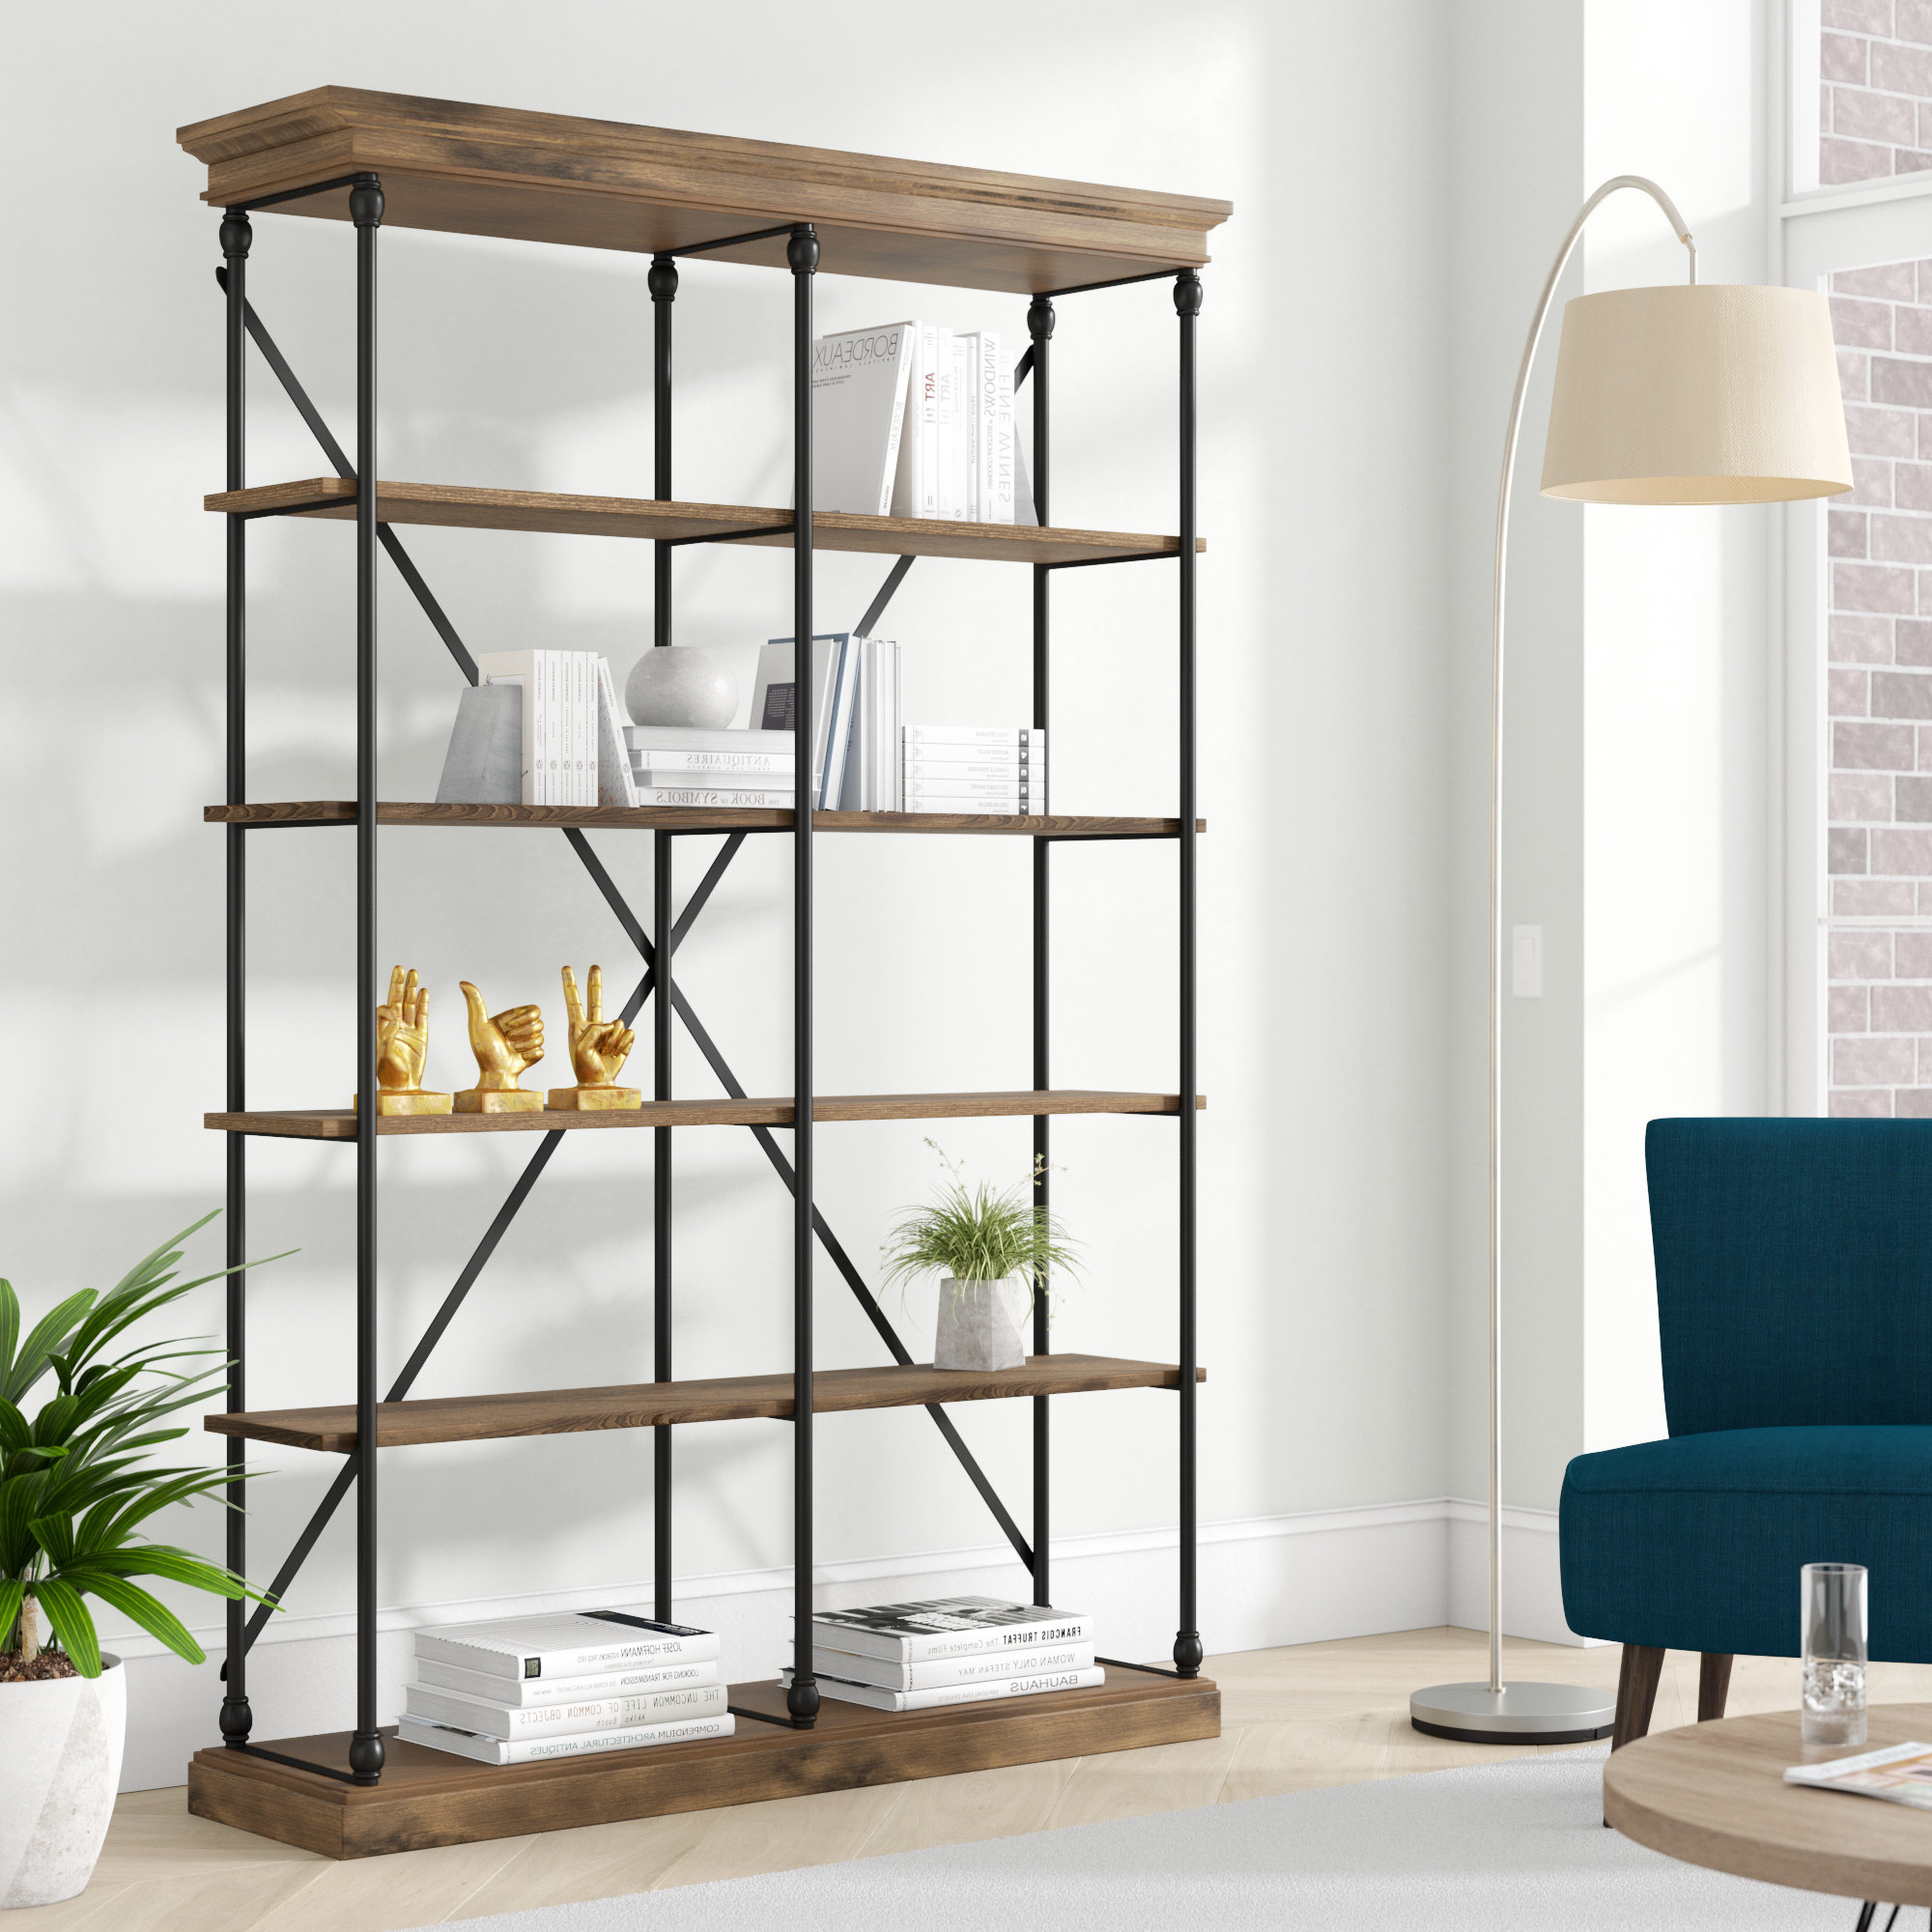 Beckwith Etagere Bookcases Within 2019 Beckwith Etagere Bookcase (Gallery 1 of 20)